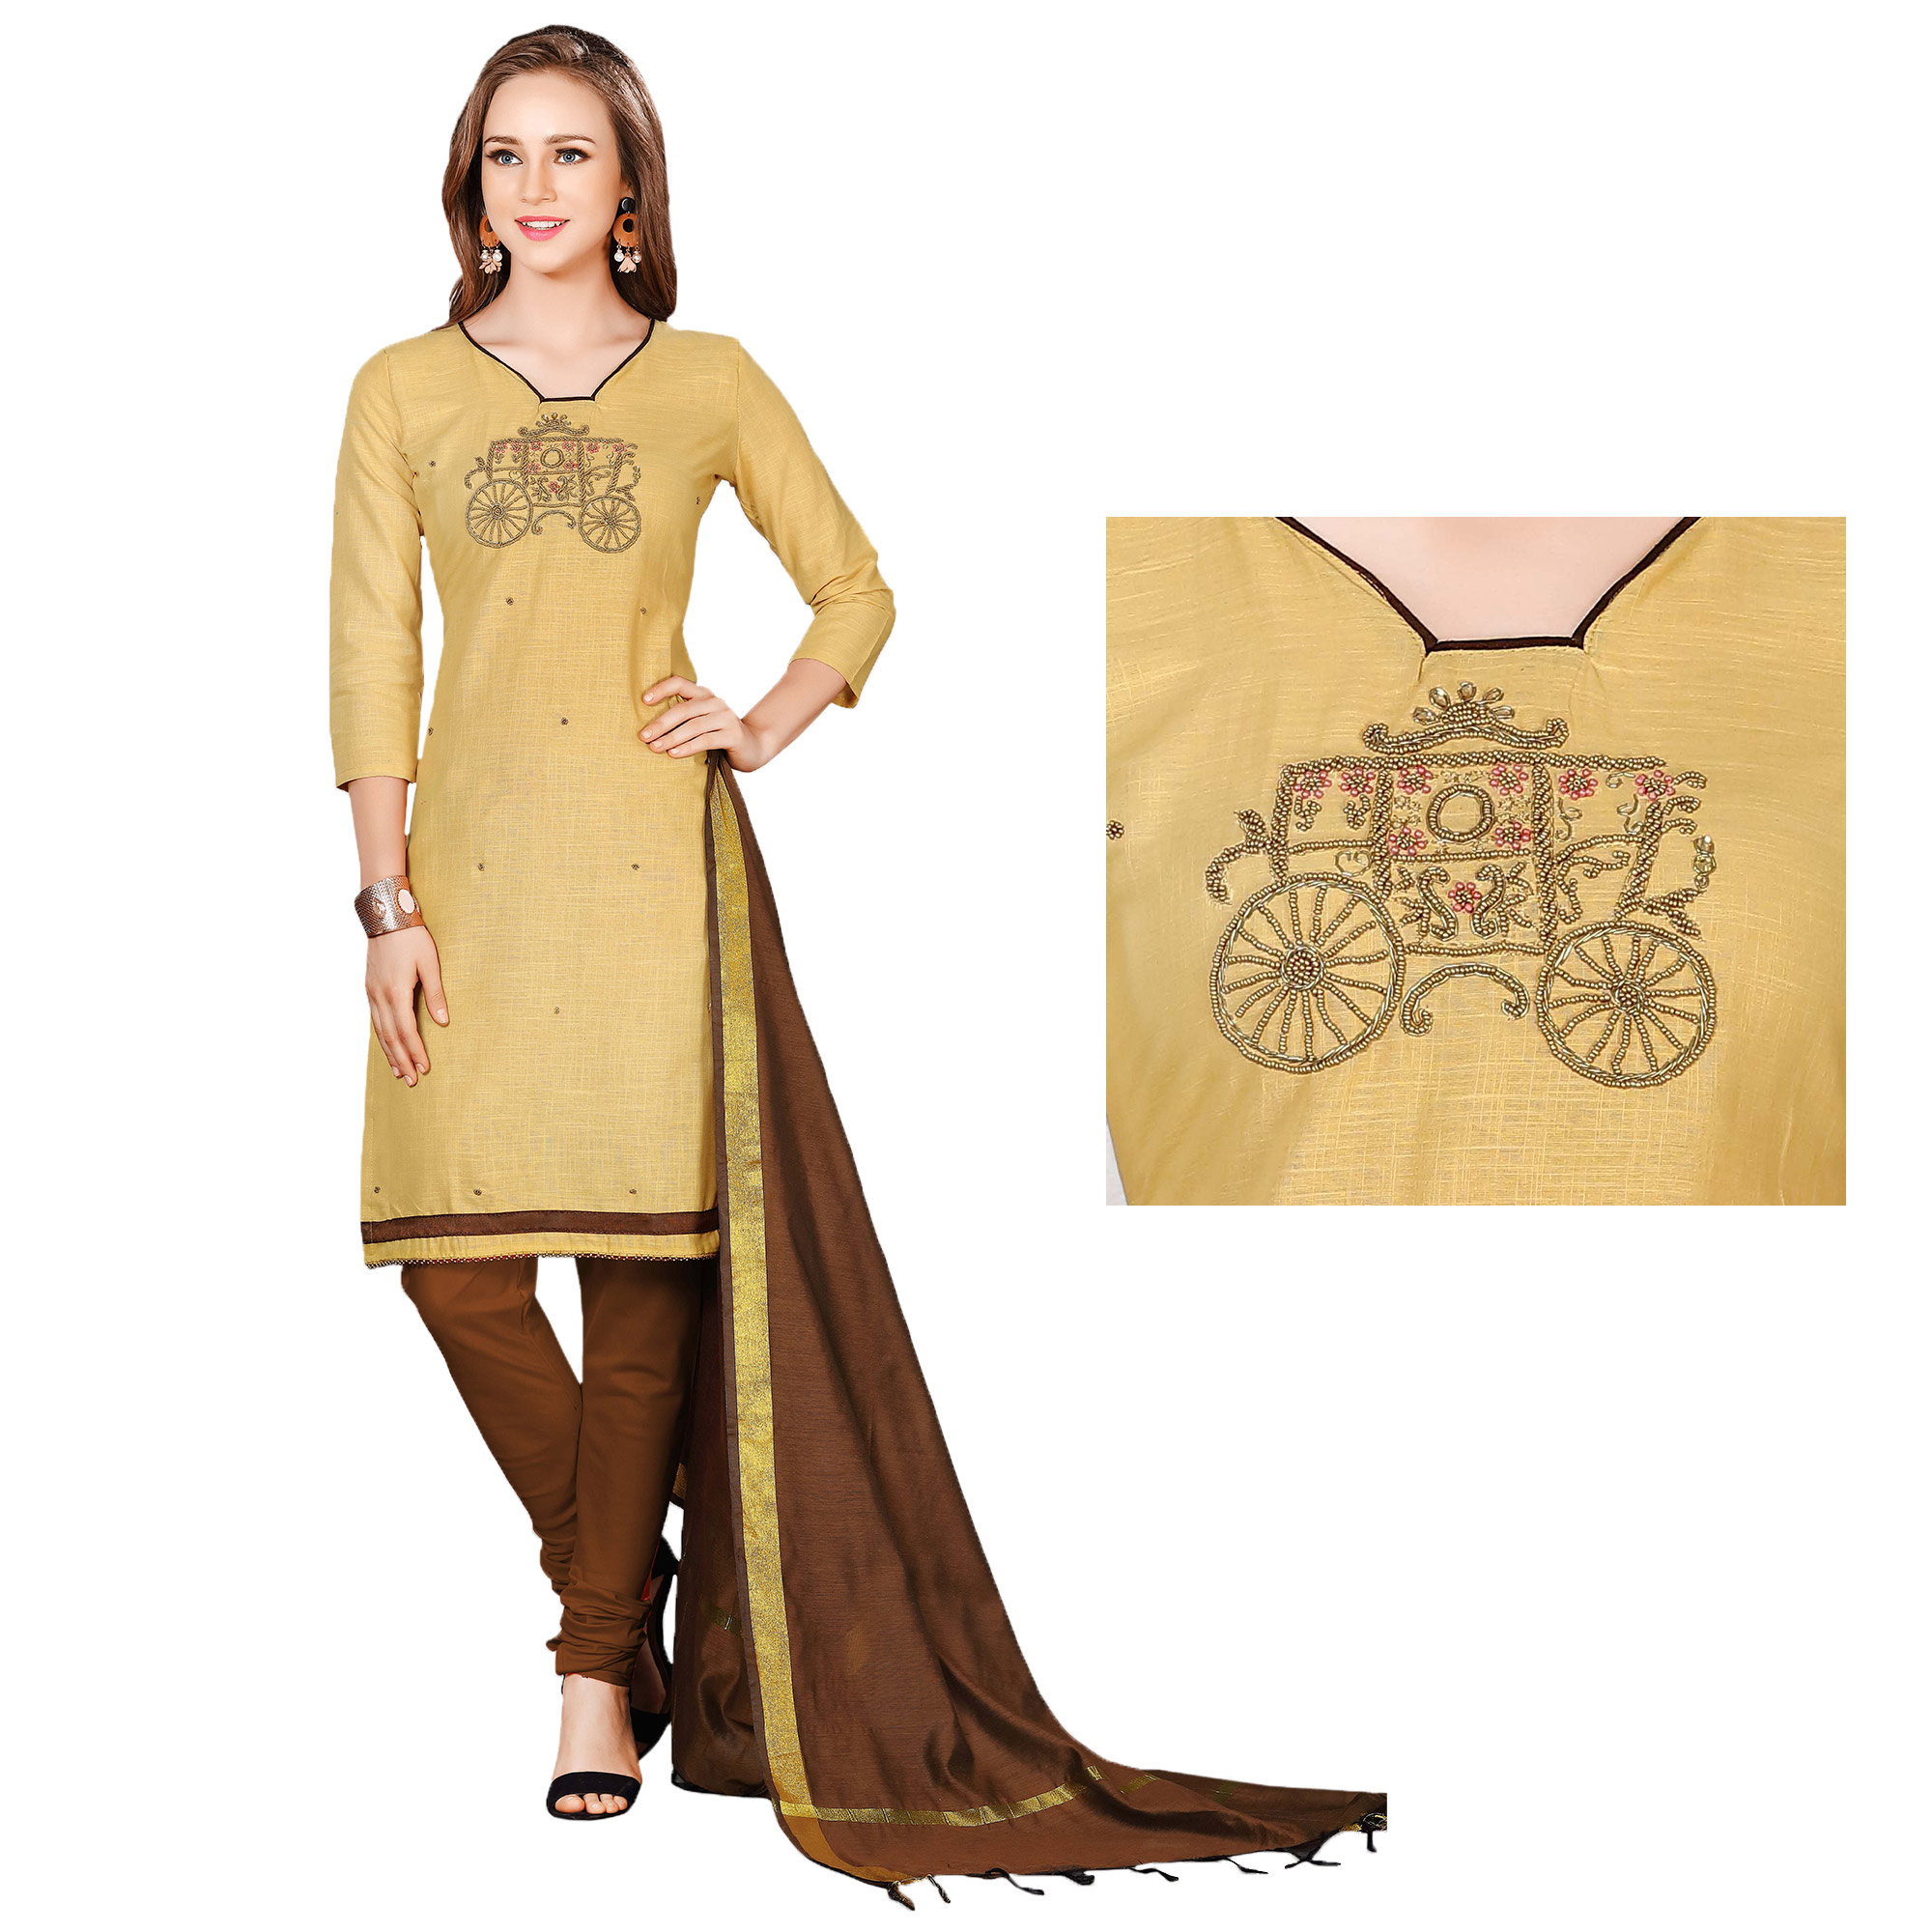 Ravishing Beige-Brown Colored Embroidered Chanderi Cotton Dress Material